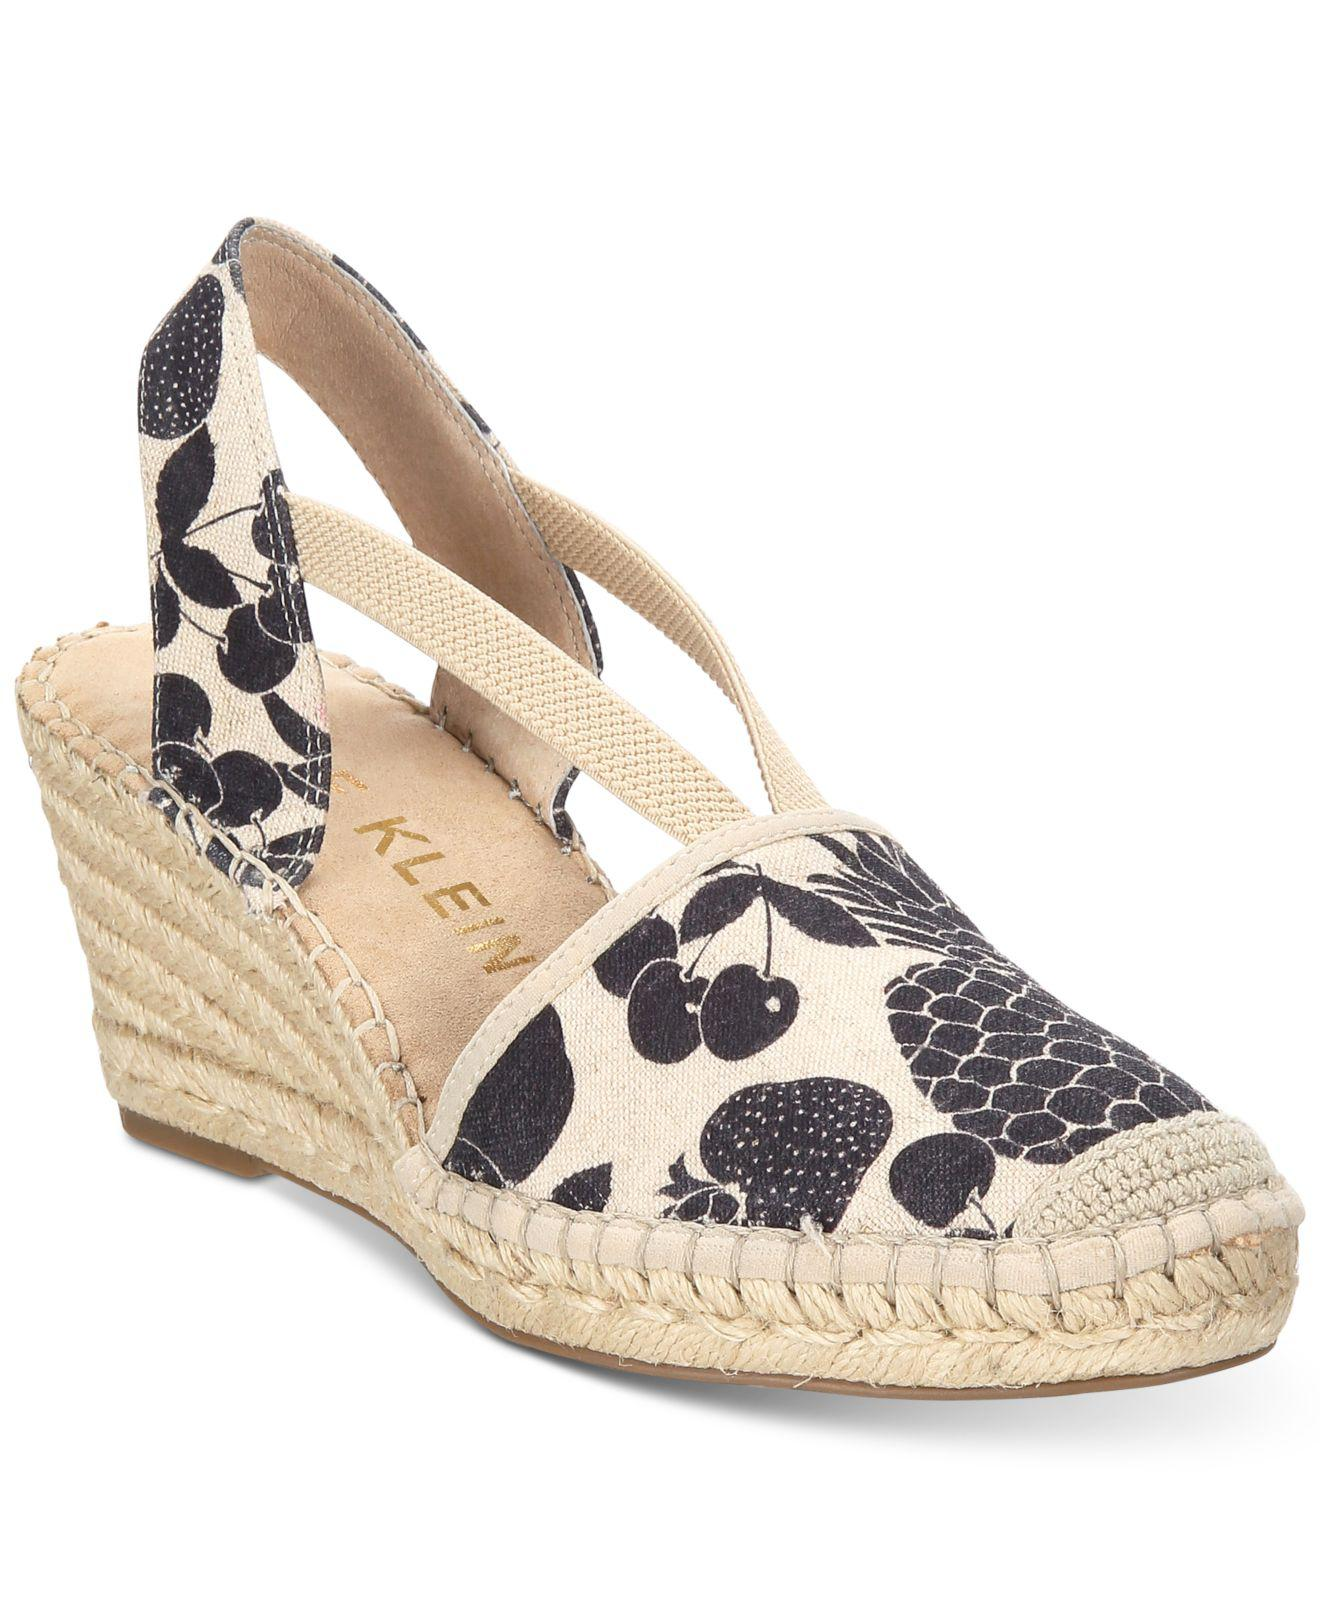 de0047c2061 Lyst - Anne Klein Abbey Espadrille Platform Wedge Sandals